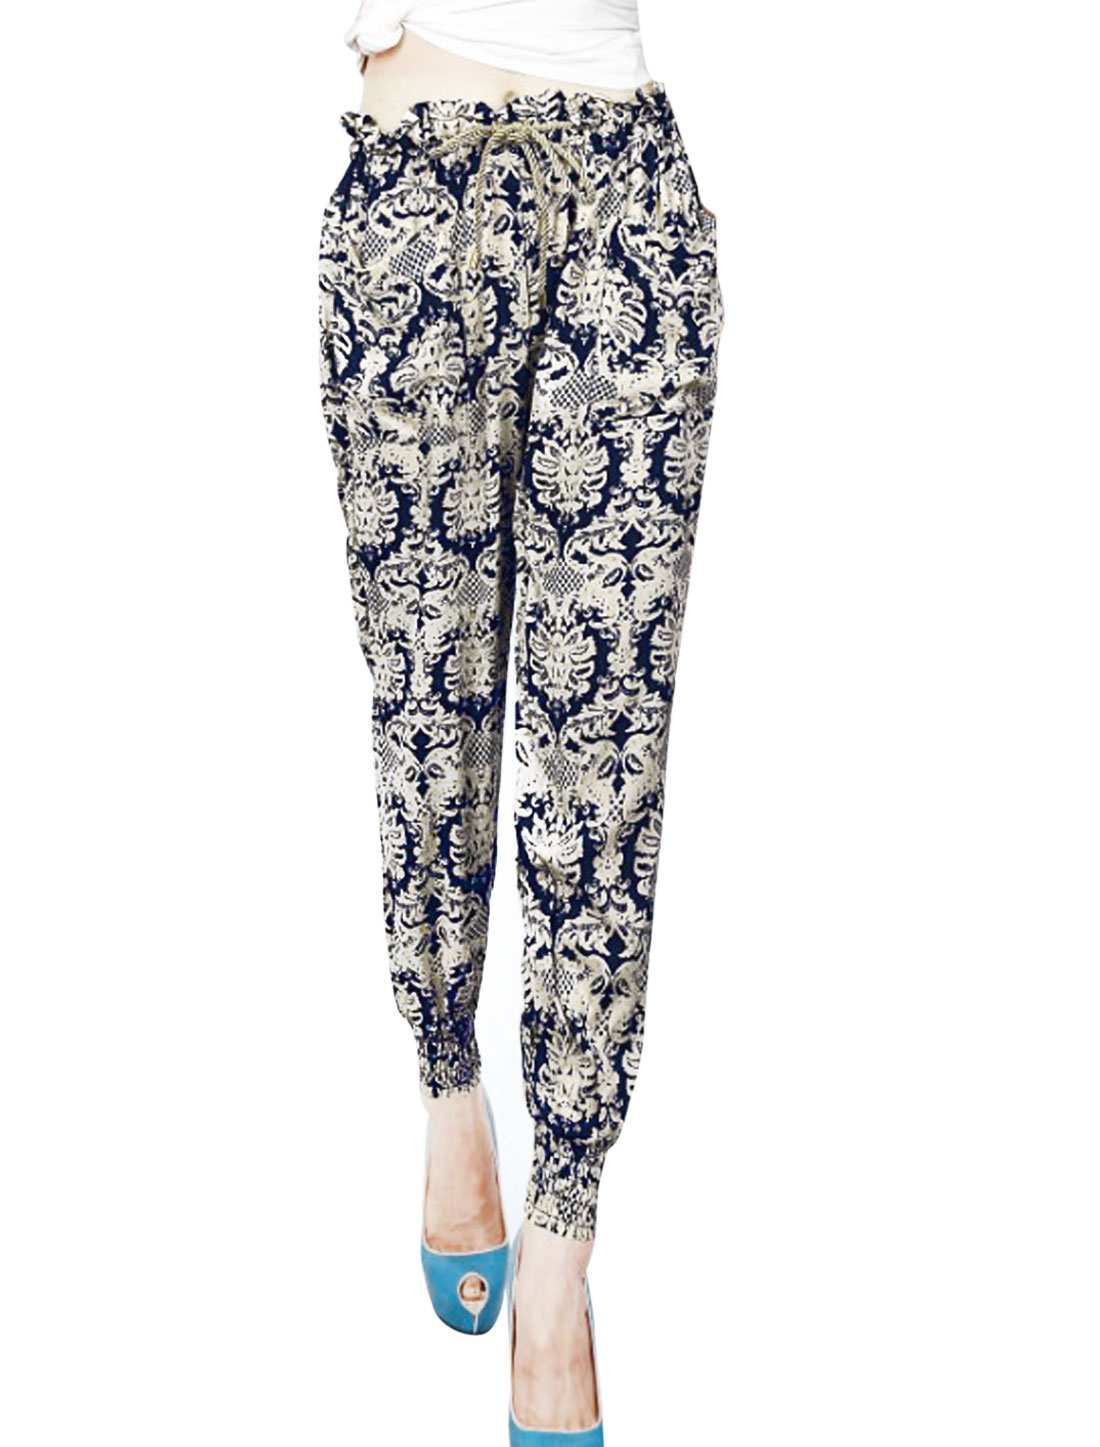 Woman Elastic Waist Cuffs Allover Spider Pattern Jogger Pants Beige Navy Blue XS